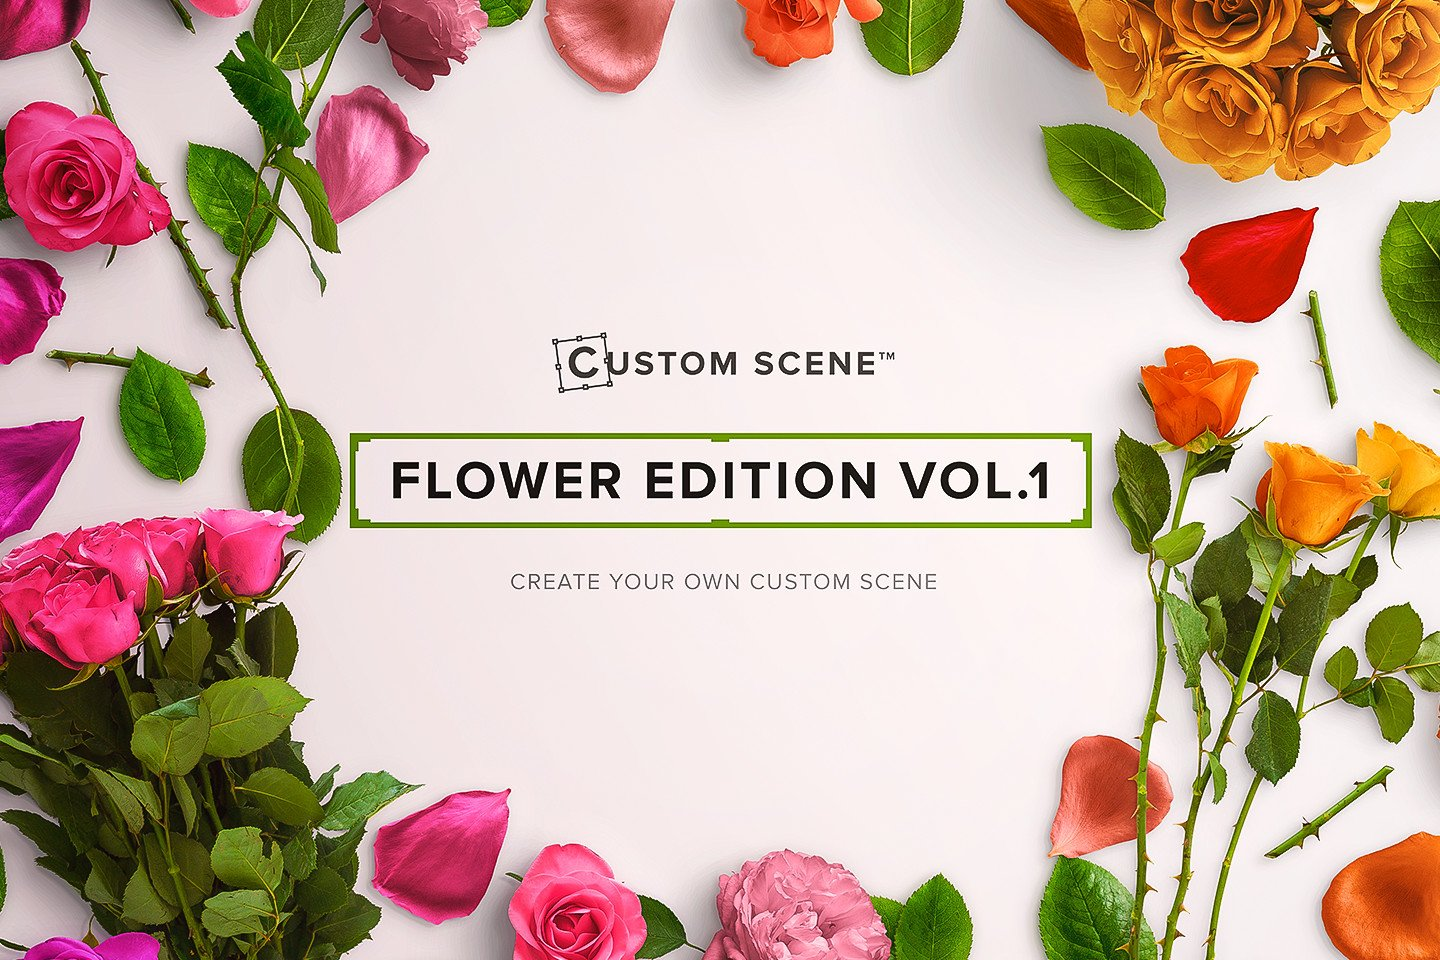 Flower Edition Vol 1 Custom Scene Graphic Objects Creative Market